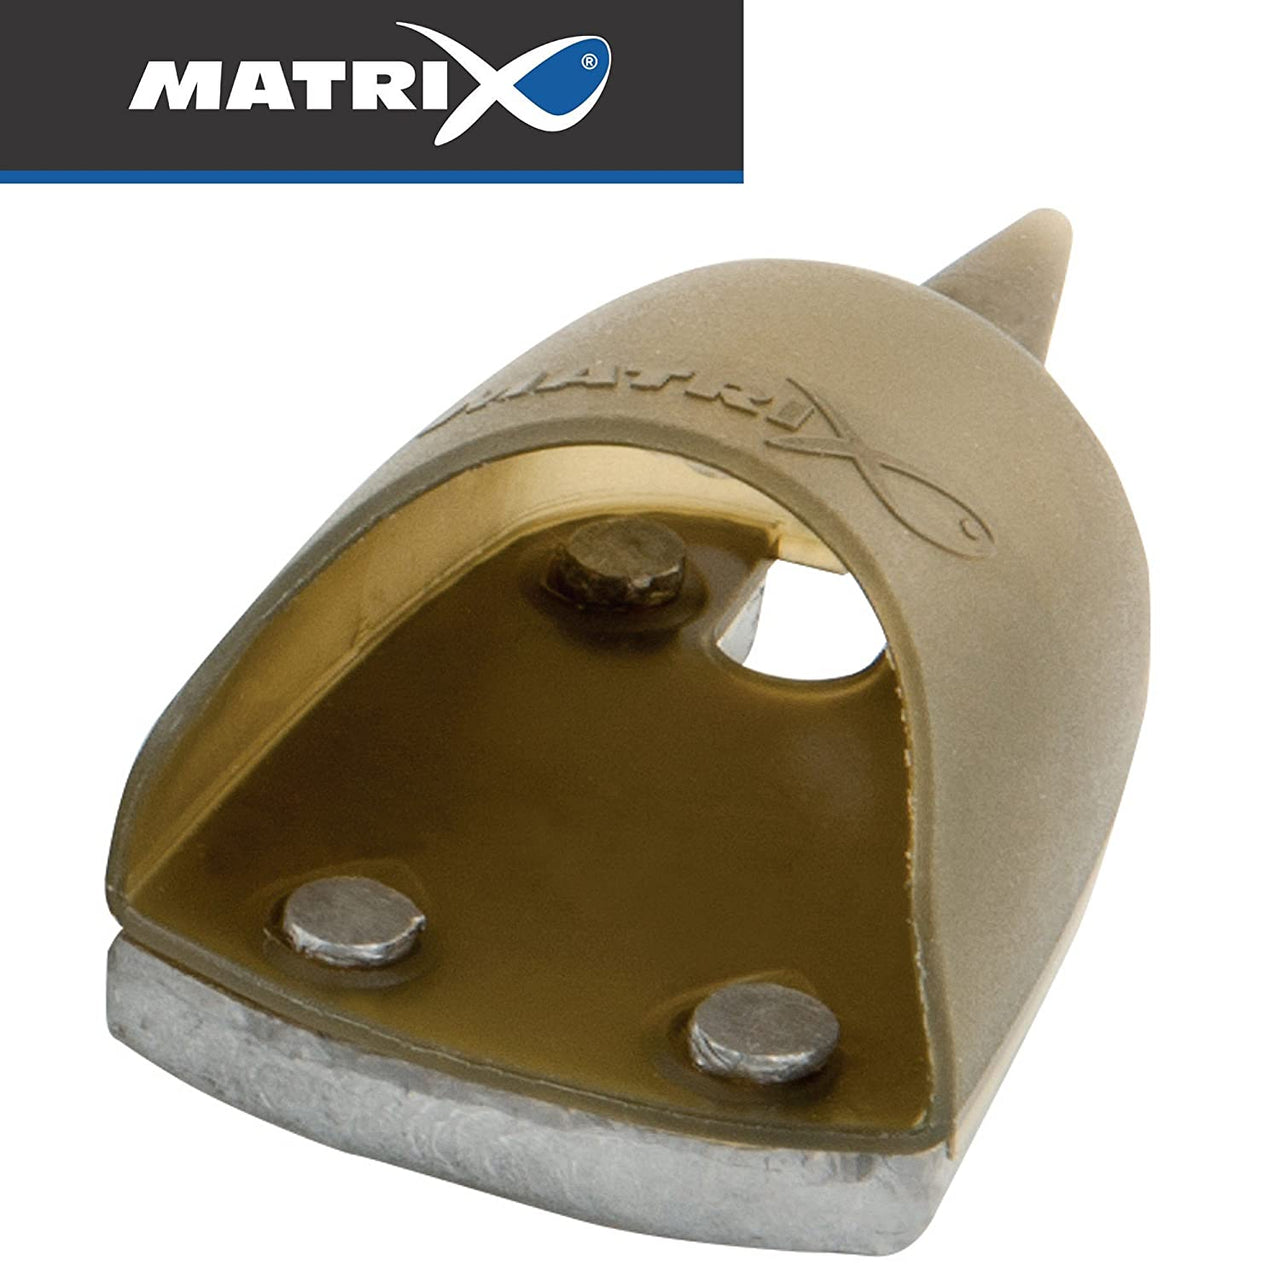 MATRIX PELLET FEEDER